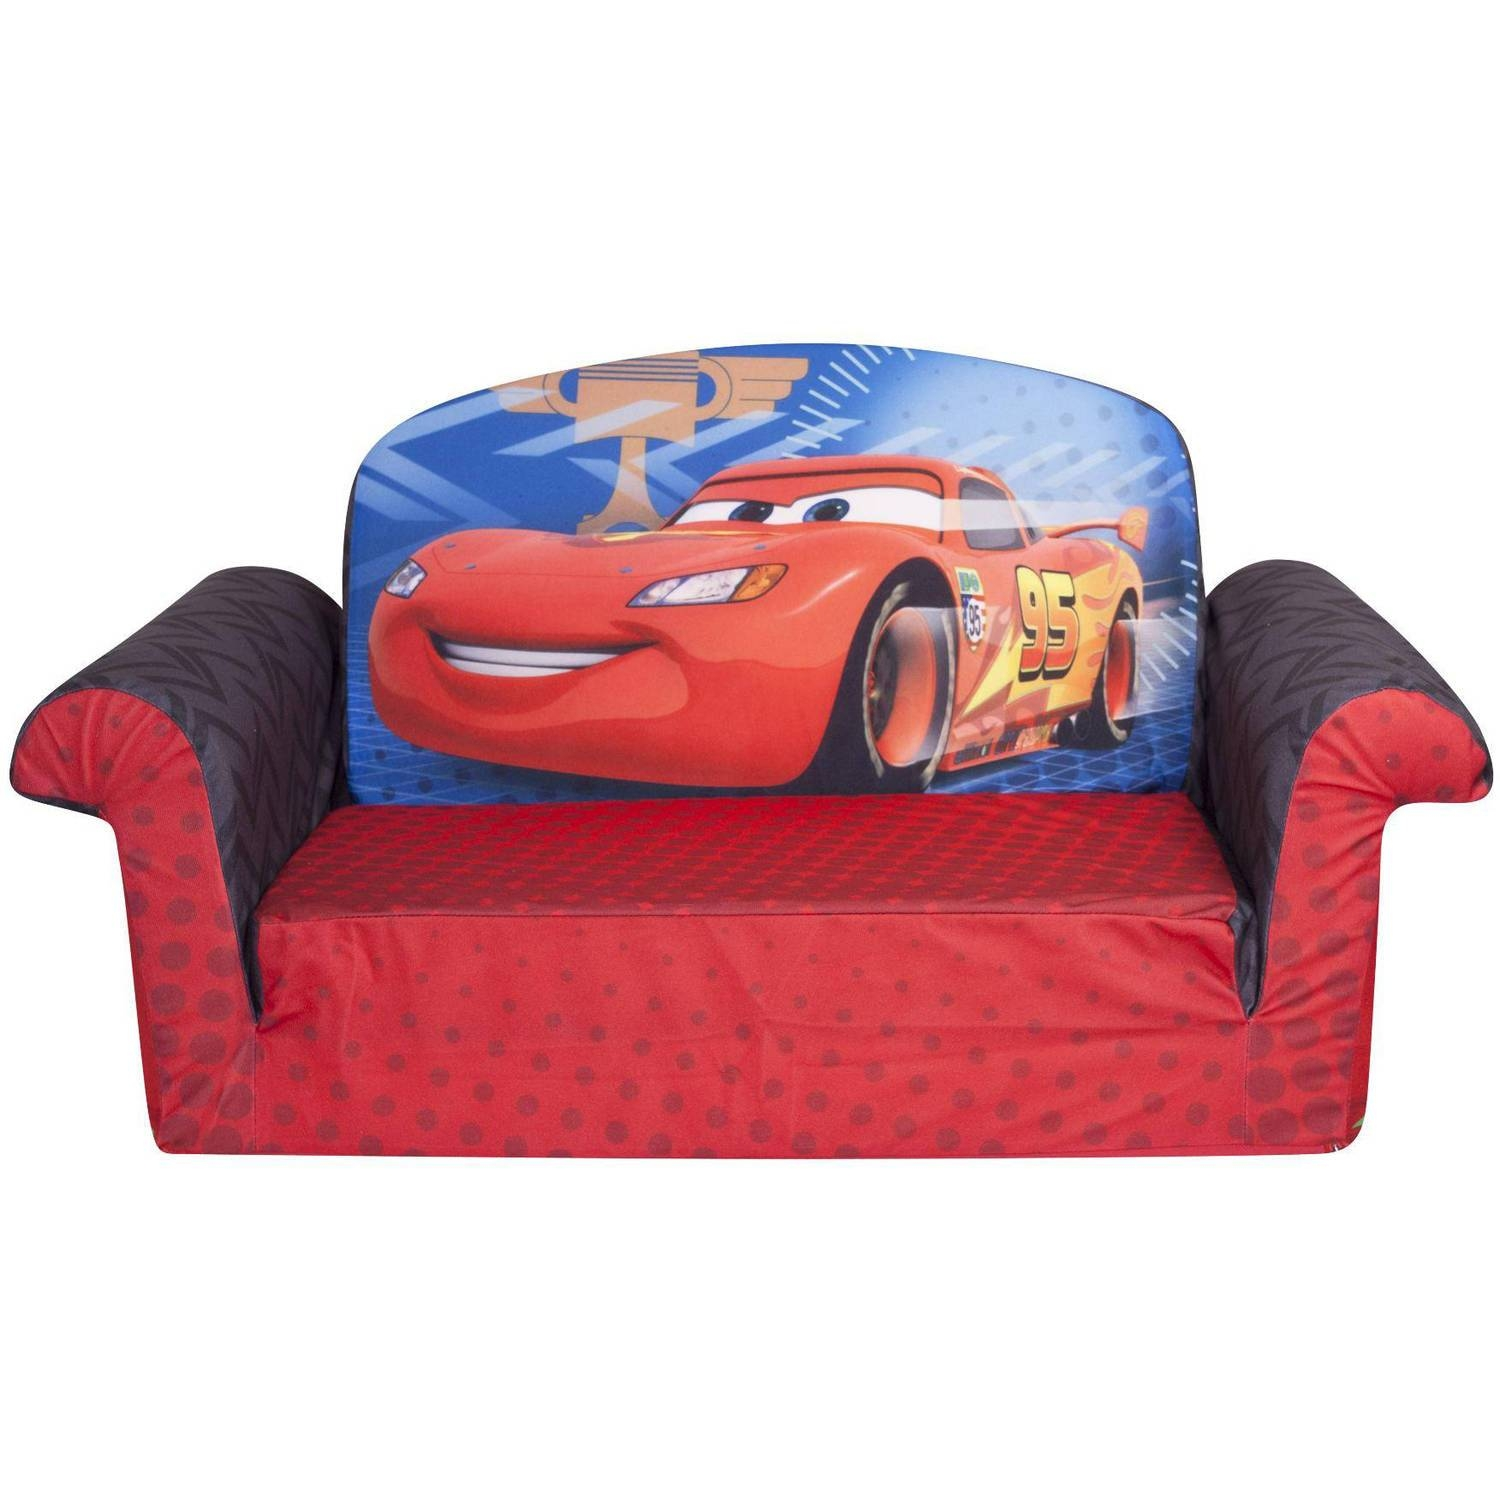 Marshmallow 2 In 1 Flip Open Sofa, Disney Cars 2 – Walmart Within Childrens Sofa Bed Chairs (View 12 of 15)